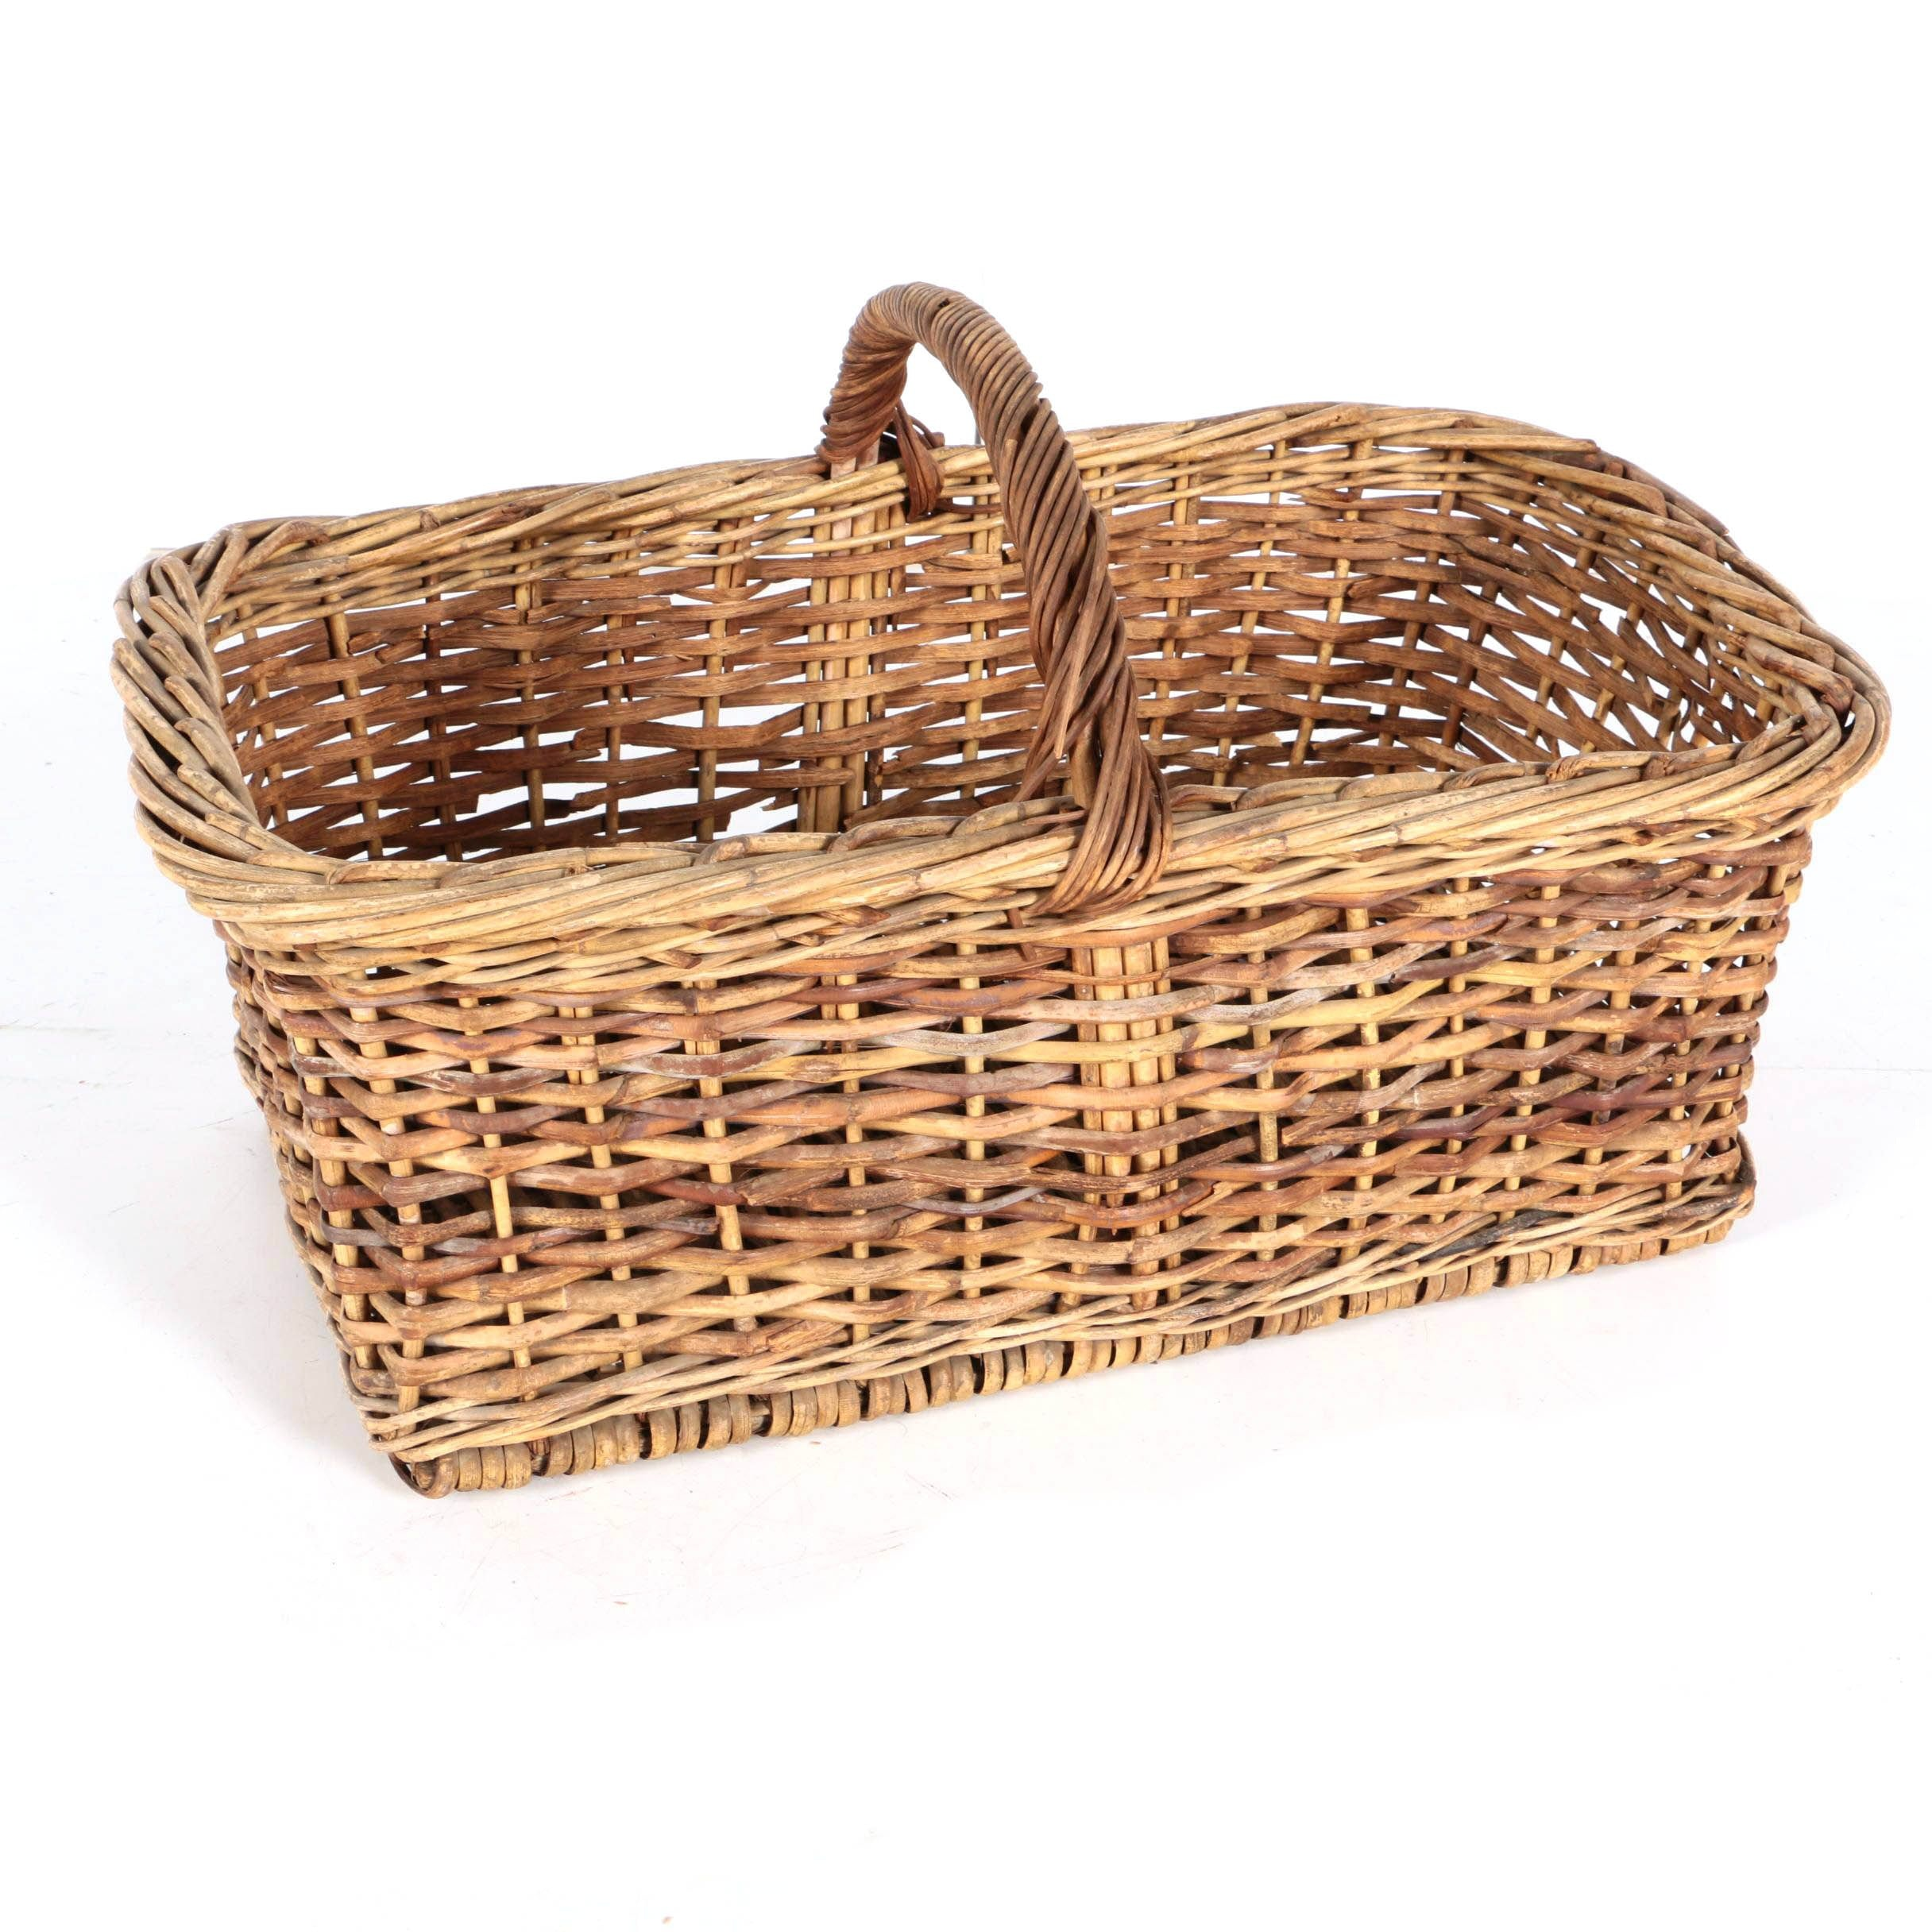 Woven Wicker Basket with Handle